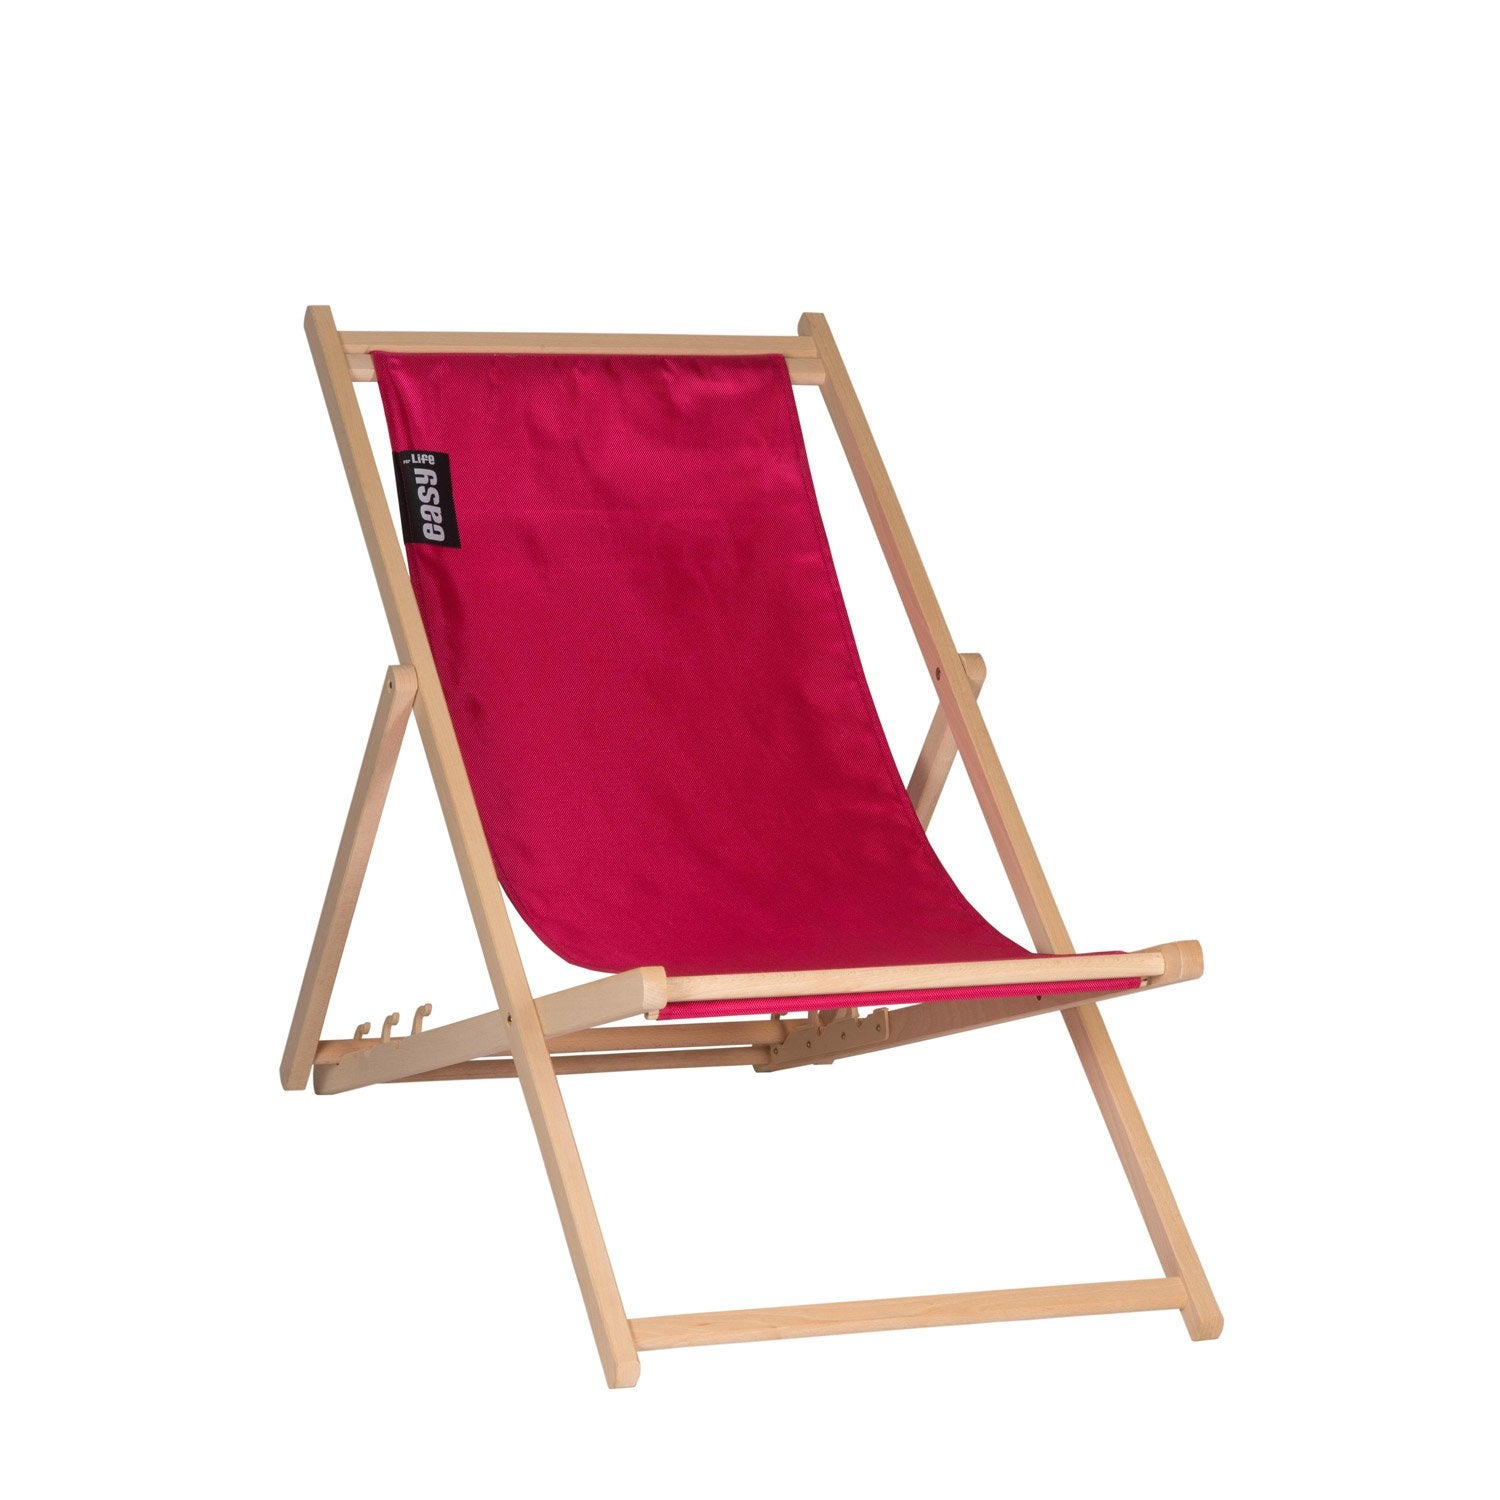 Chaise longue chilienne leroy merlin - Chaise de jardin leroy merlin ...